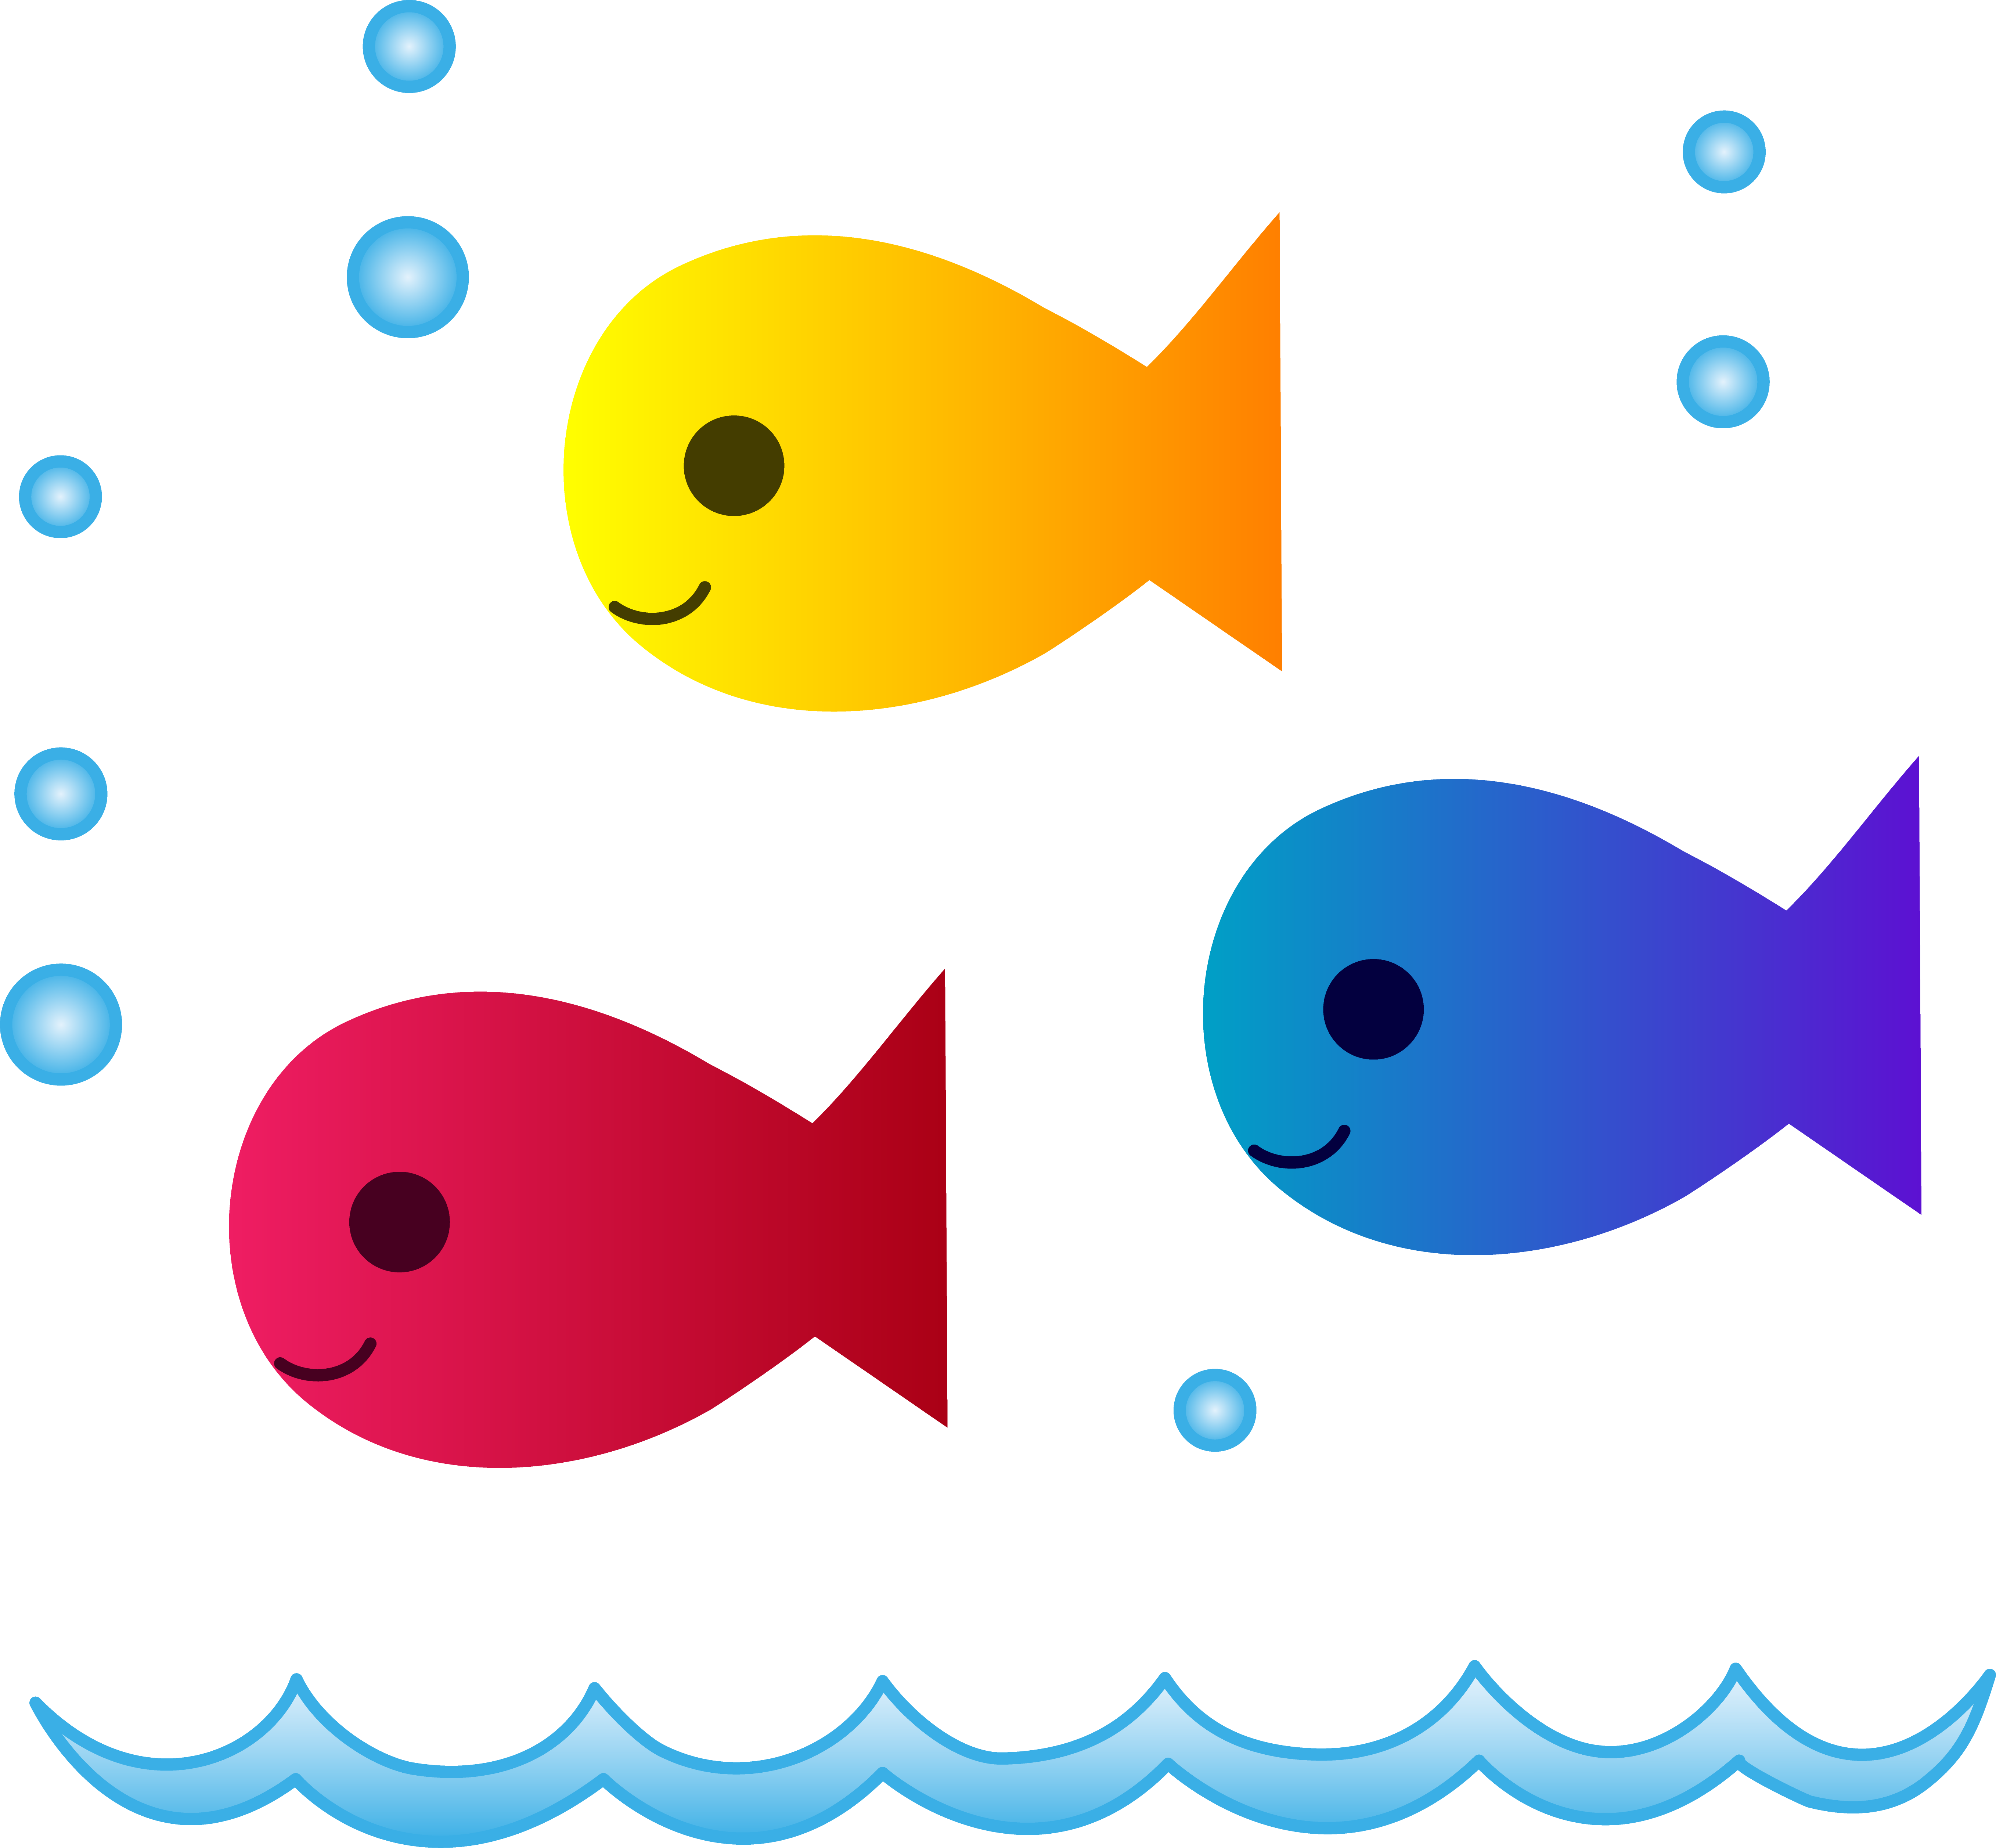 image library download School of swimming free. Cute fish clipart